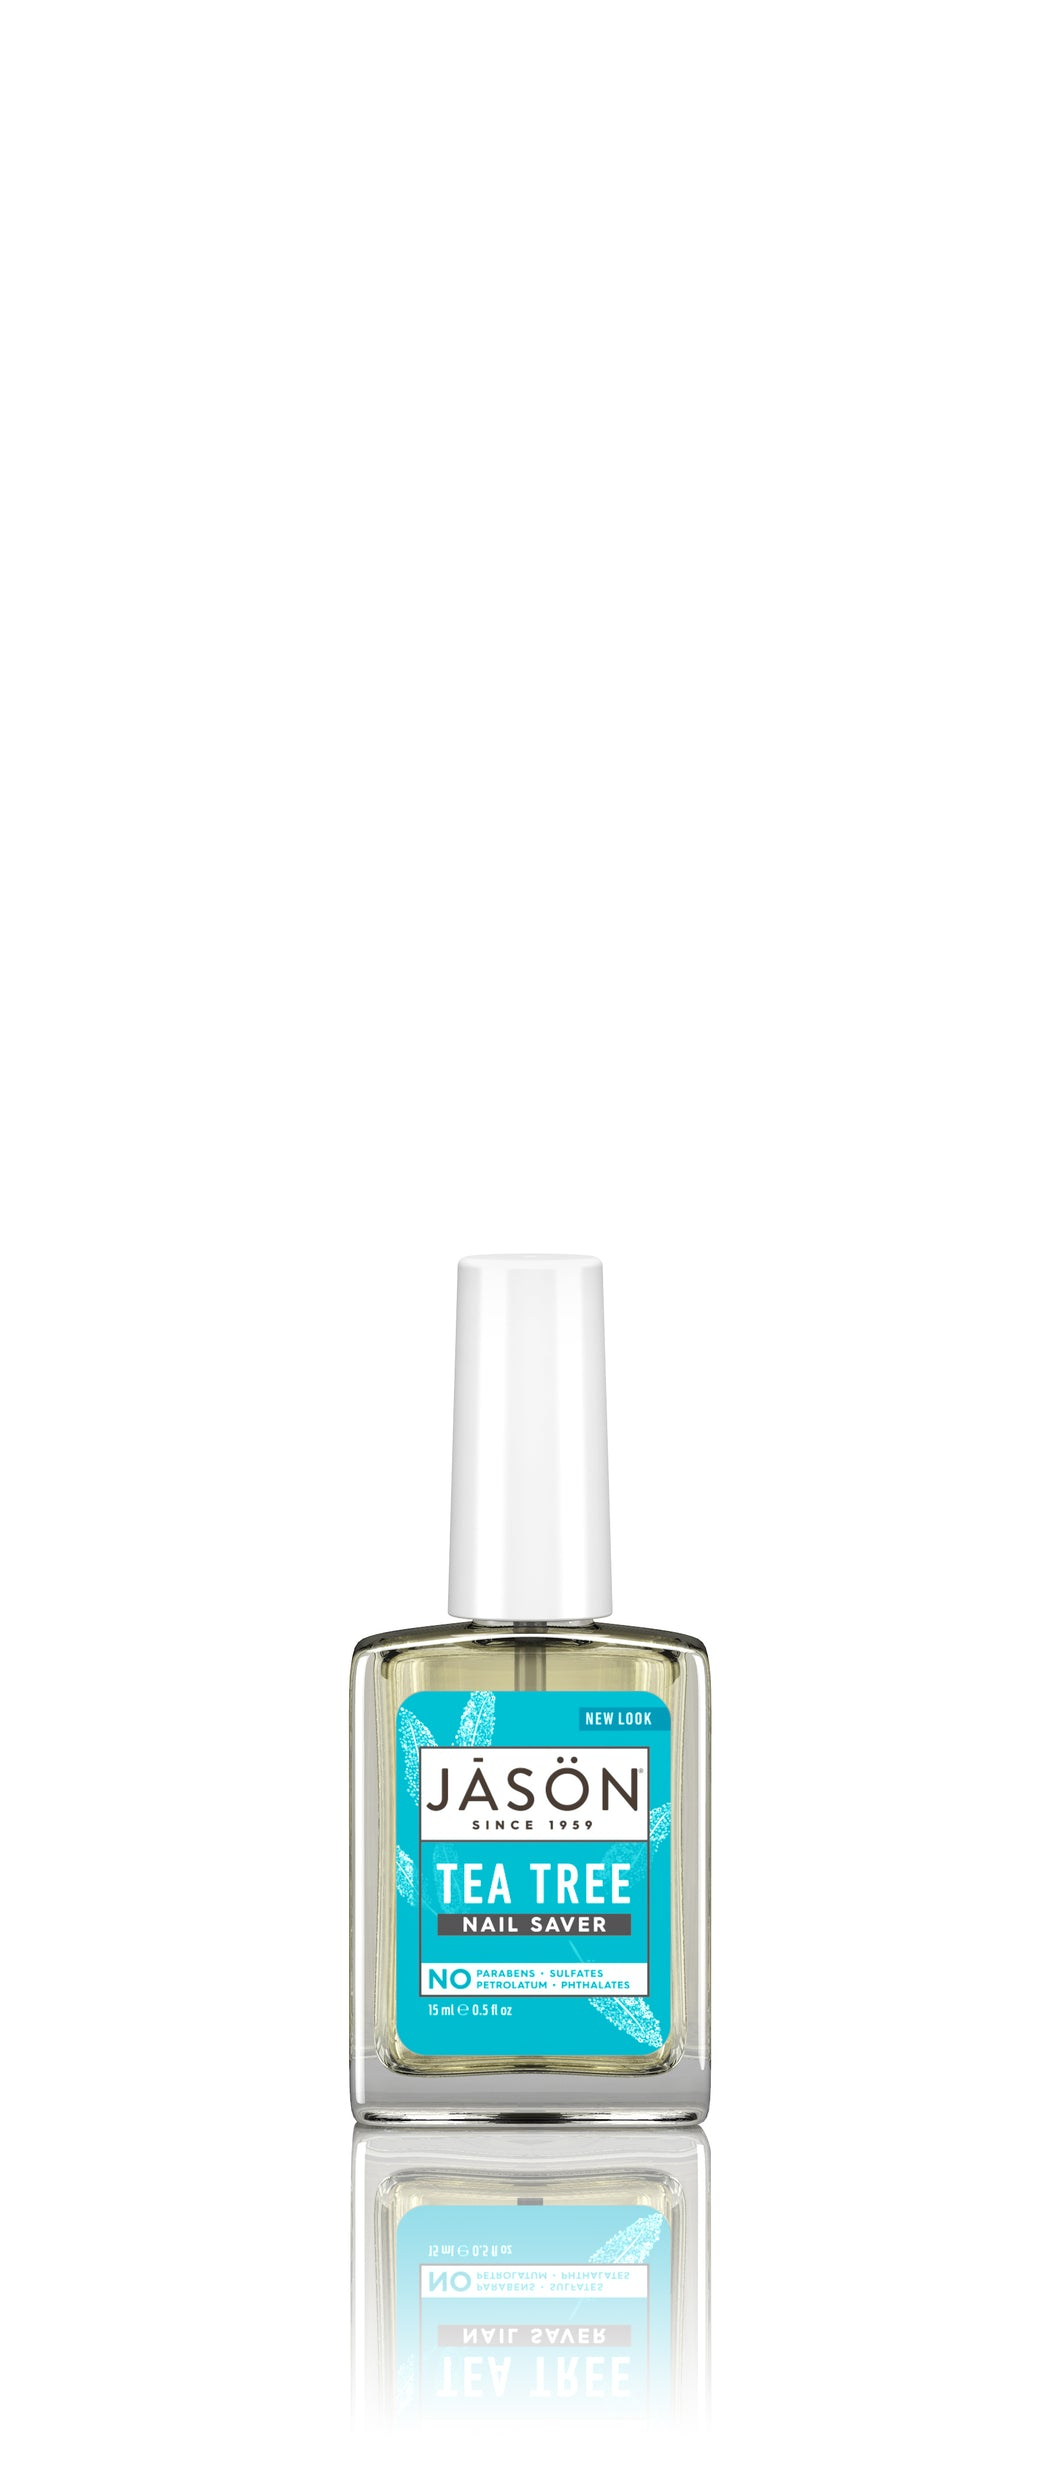 Tea Tree Nail Saver